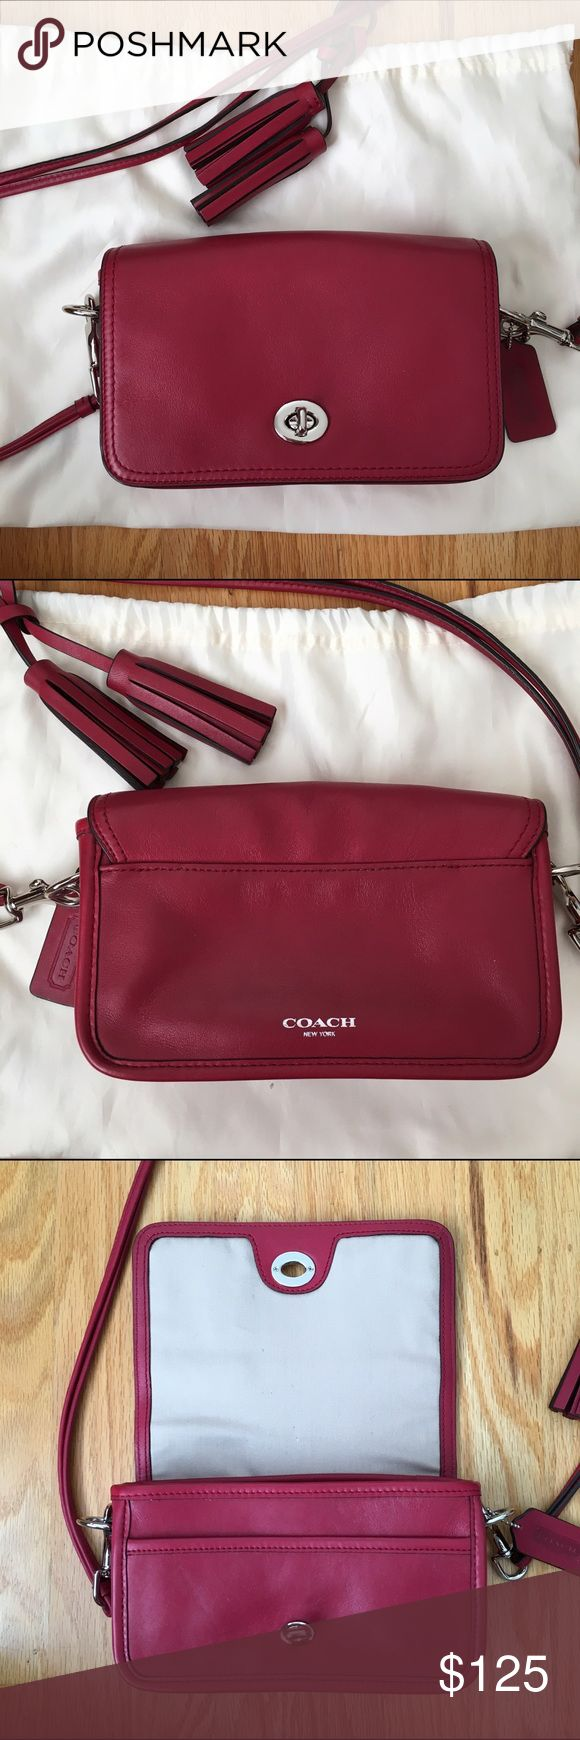 Coach Legacy Leather Penny Purse - Burgundy Coach leather Penny purse. Removable strap. Gently used! No tag or dustbag, but comes with original tassles and hangtag. Coach Bags Crossbody Bags